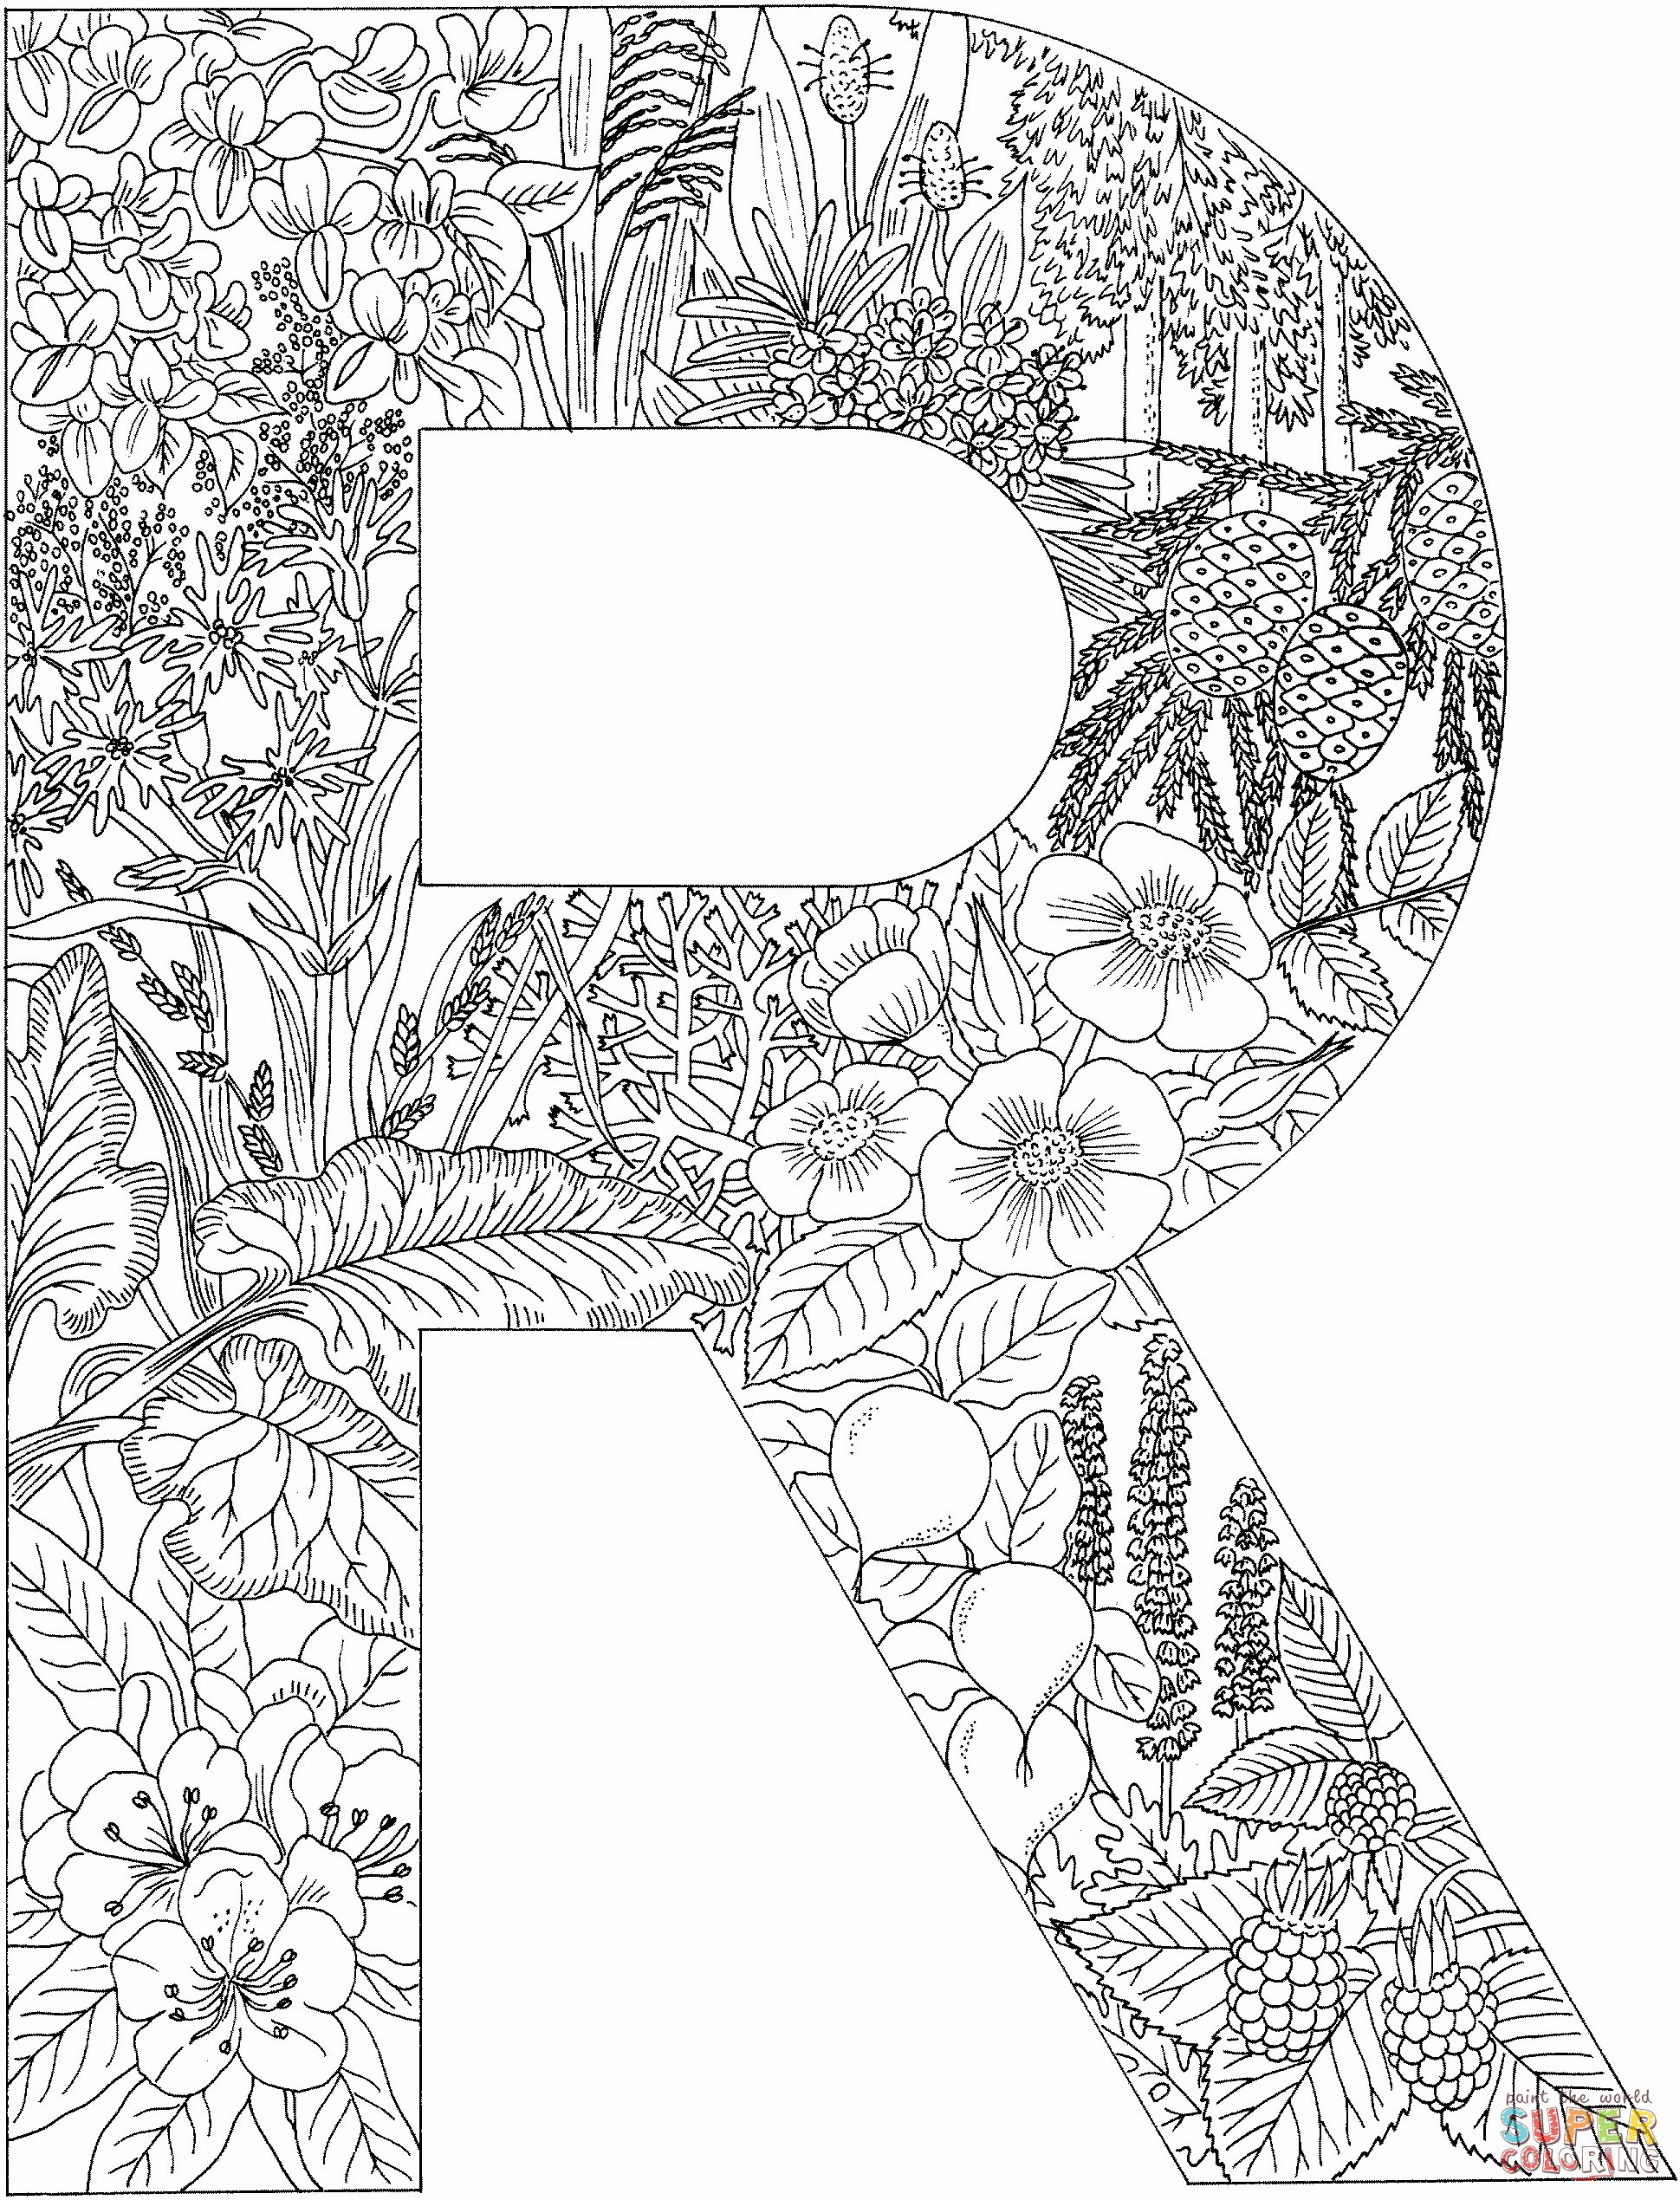 Letter Coloring Pages For Adults In 2020 Coloring Letters Coloring Pages Lettering